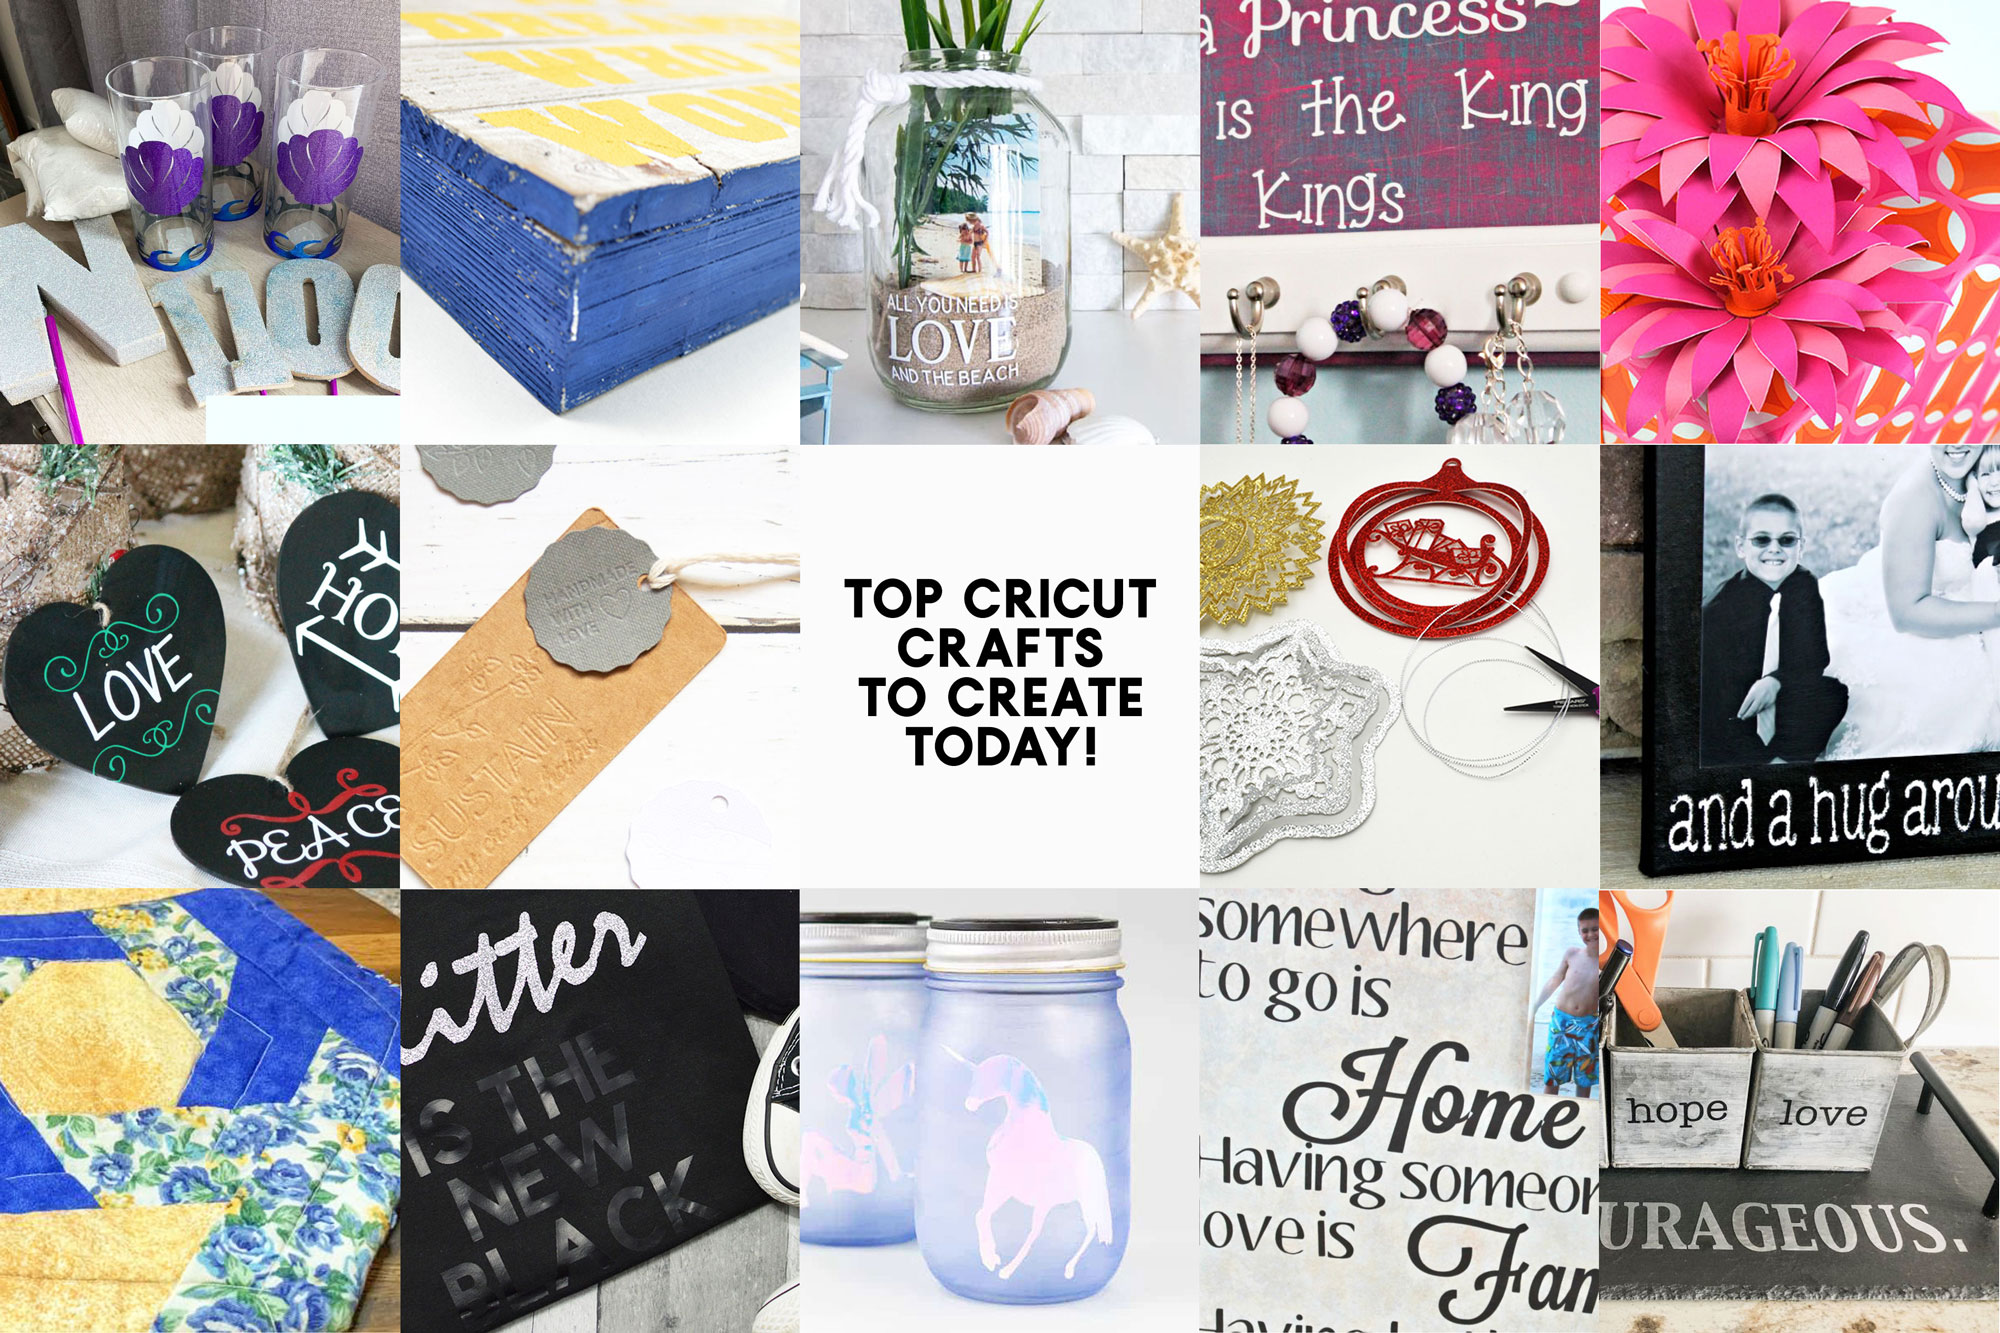 recreate cricut crafts